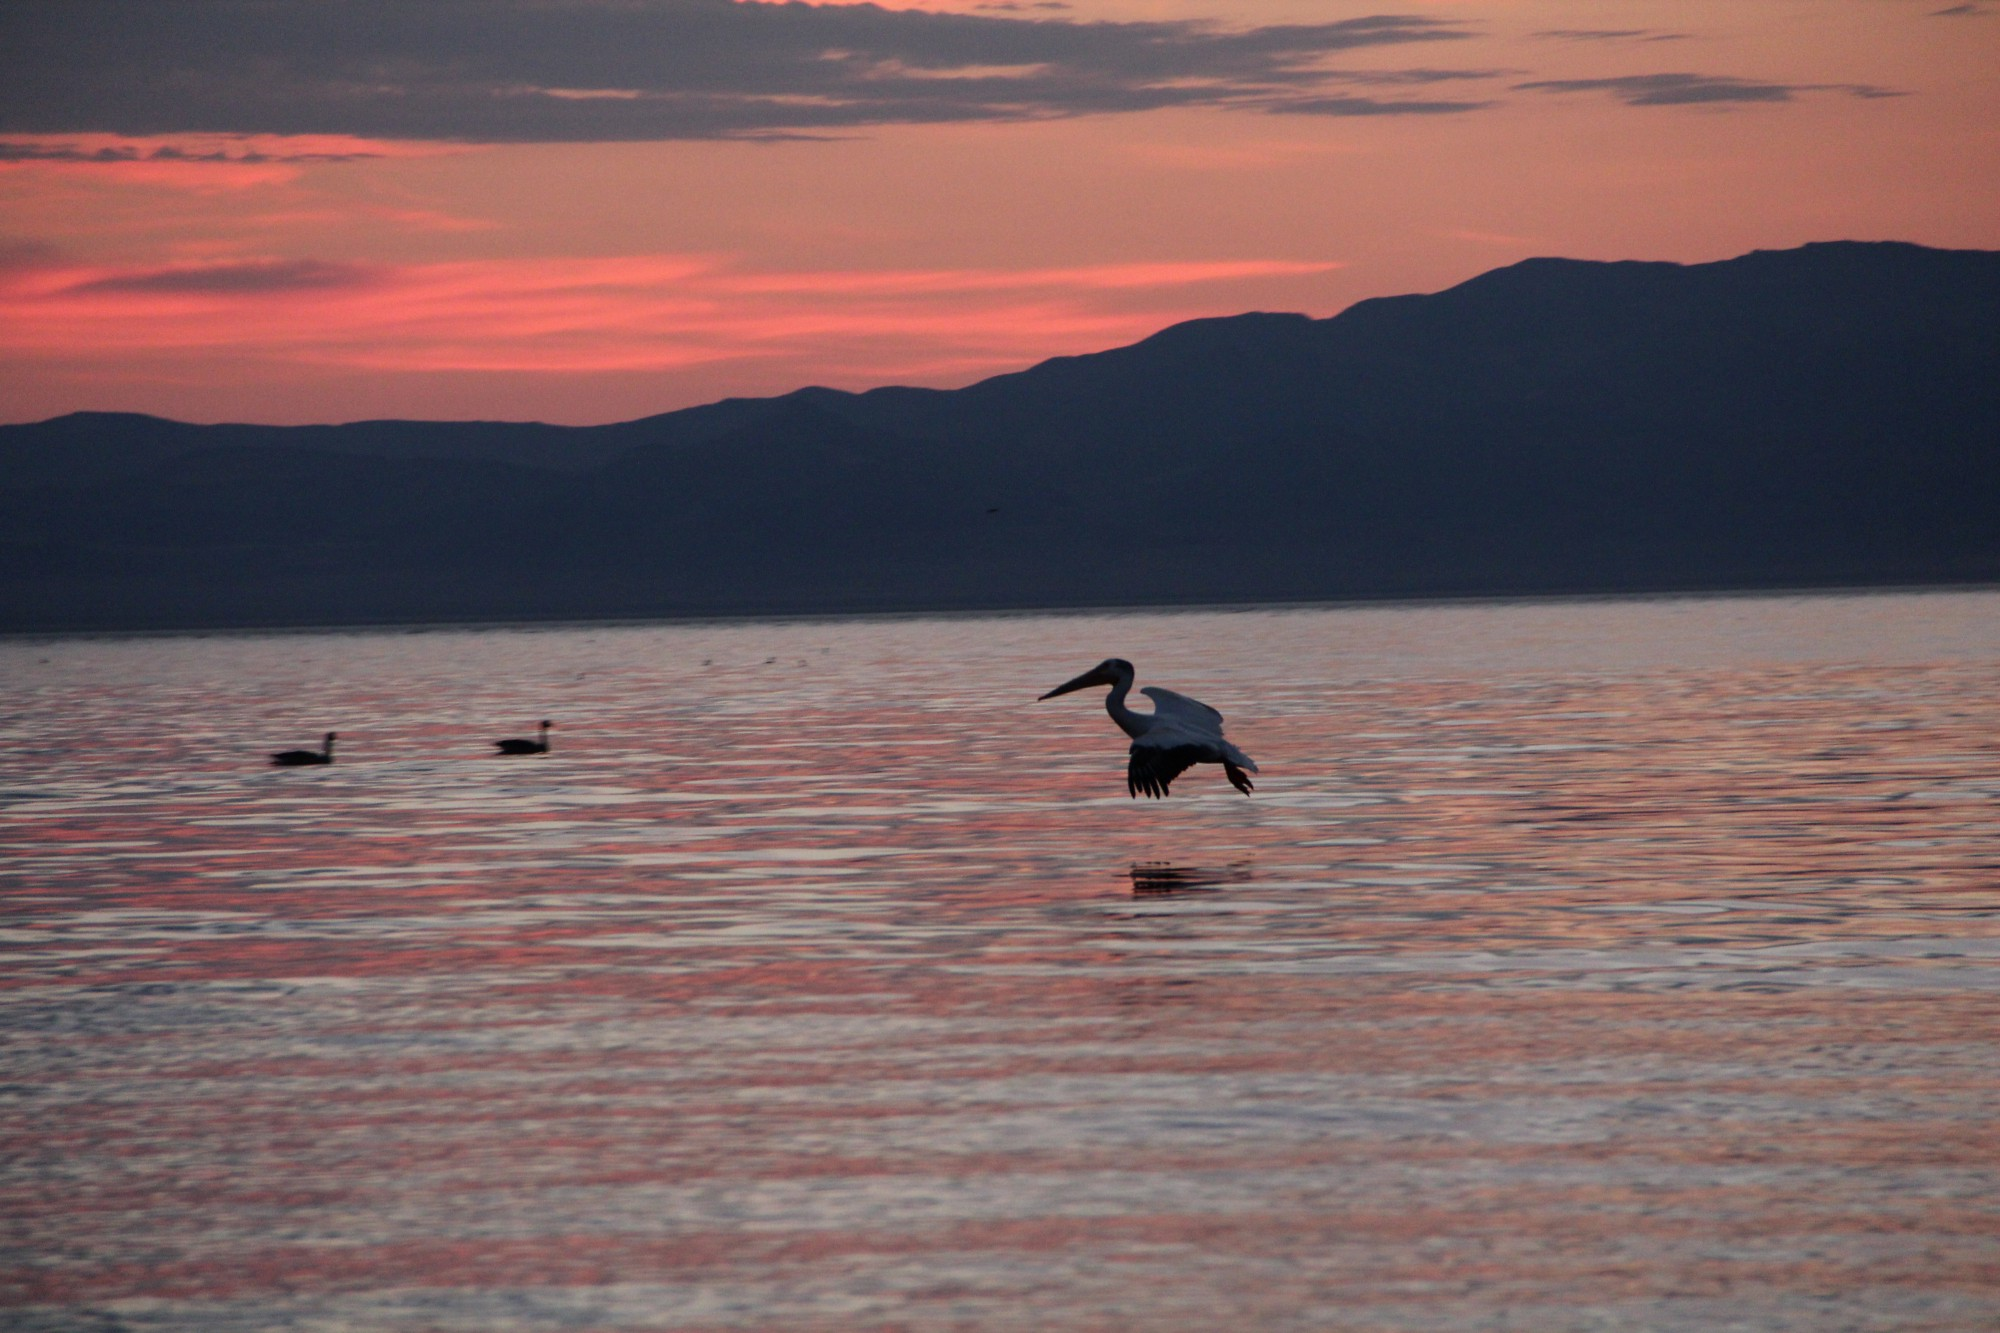 A pelican just above the surface of a lake, pink light from sunrise bathes the scene.